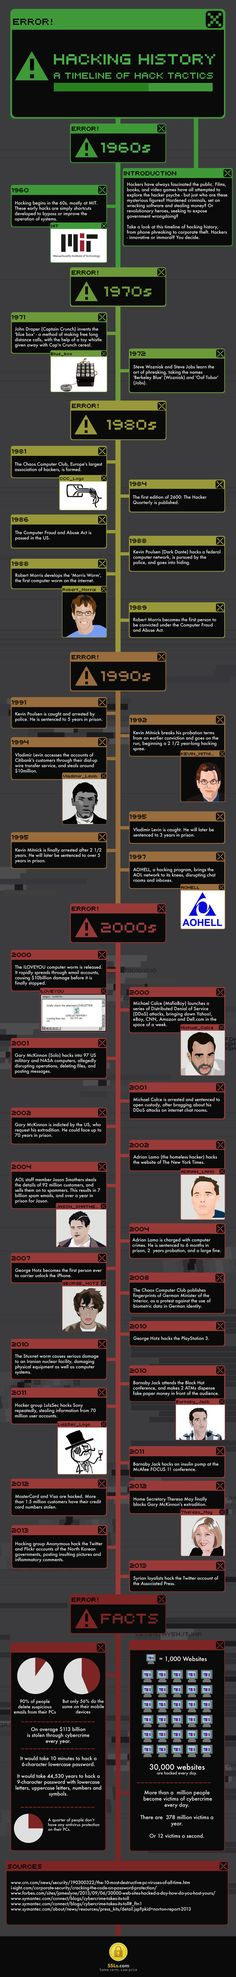 Hacking History: A Timeline of Hack Tactics | #infographics repinned by @Piktochart